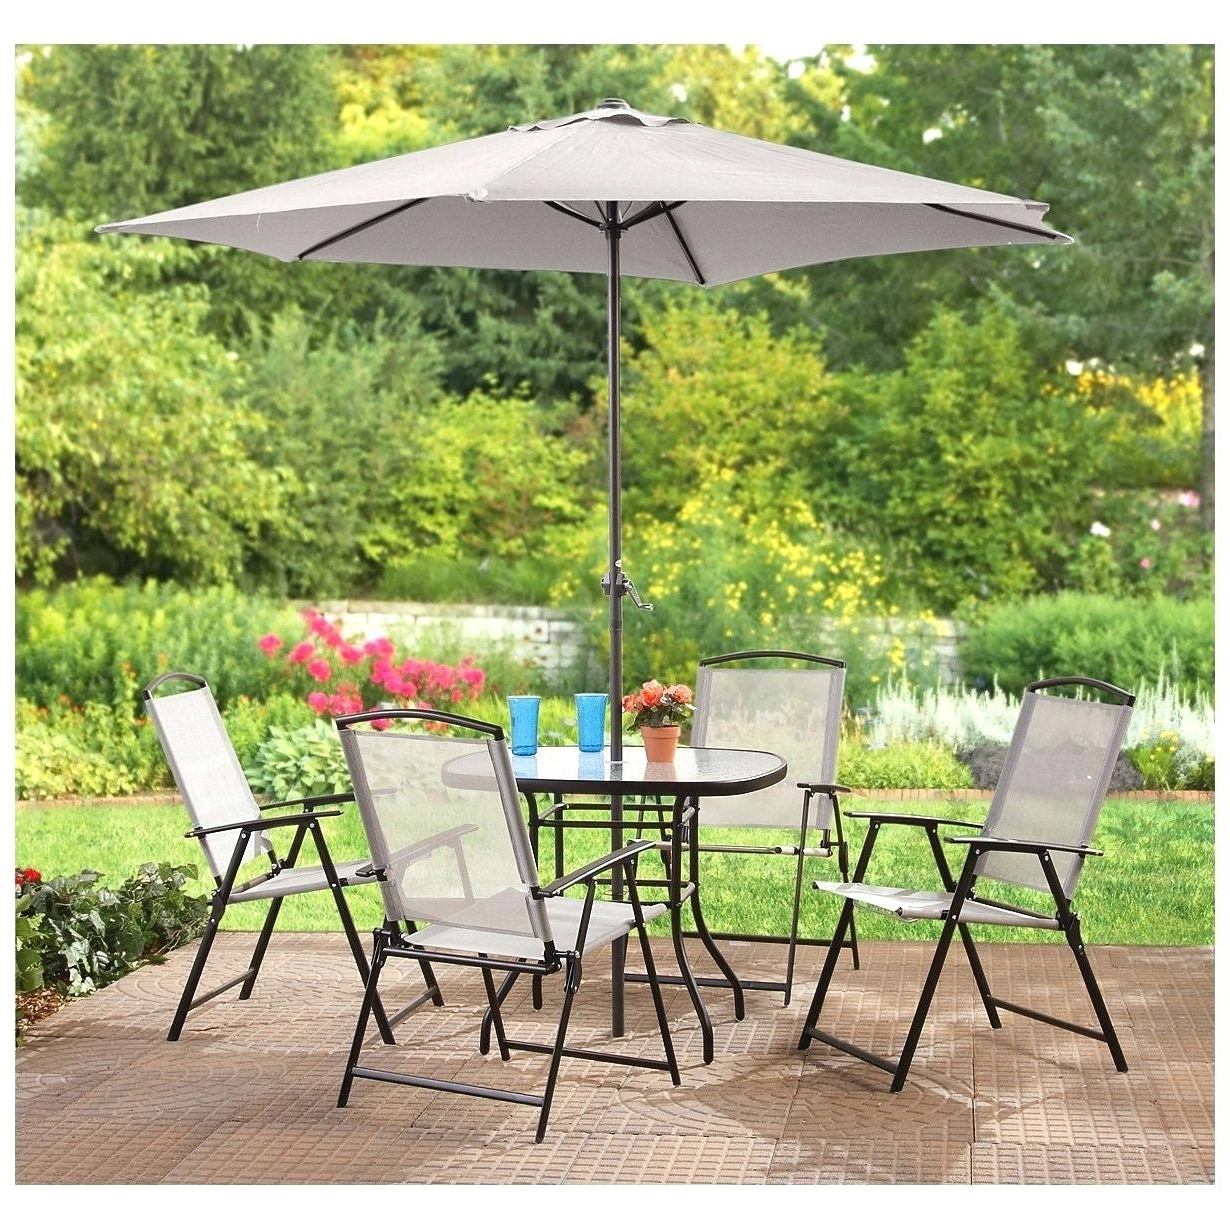 Well Liked Patio Furniture Dining Set Sets Walmart Sale Outdoor With Umbrella In Patio Dining Sets With Umbrellas (View 16 of 20)